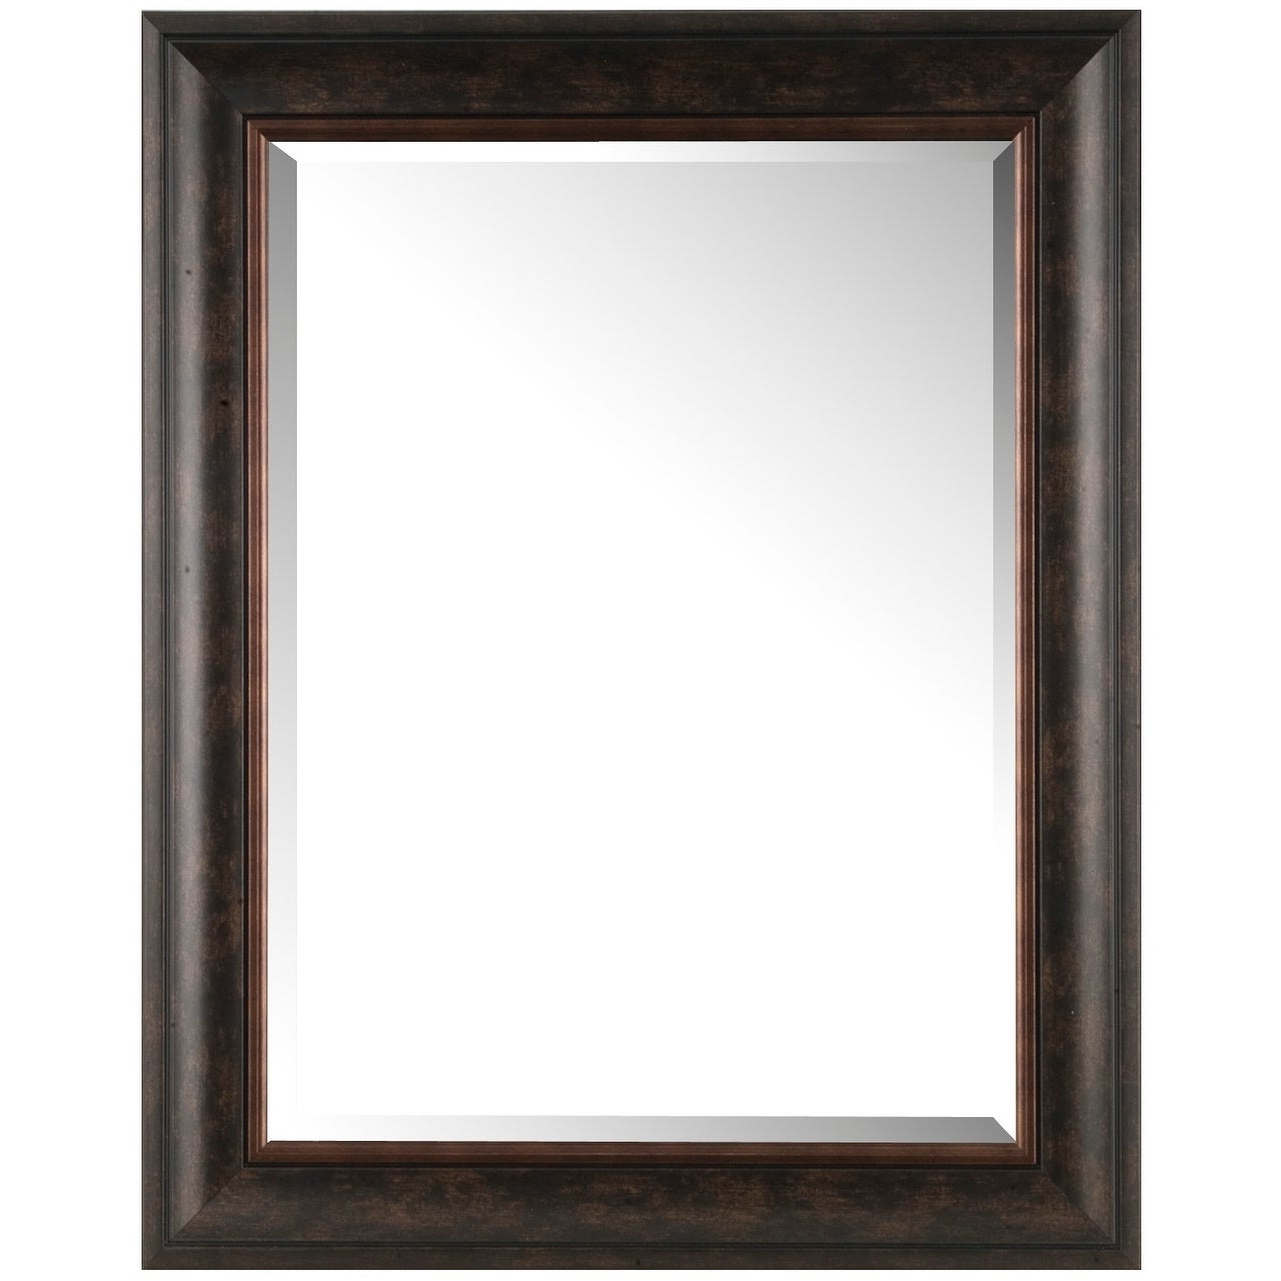 Most Popular Plastic Wall Mirrors For Brown Bronze Finish, Rectangular Plastic Wall Mirrormirrorize Canada (View 11 of 20)